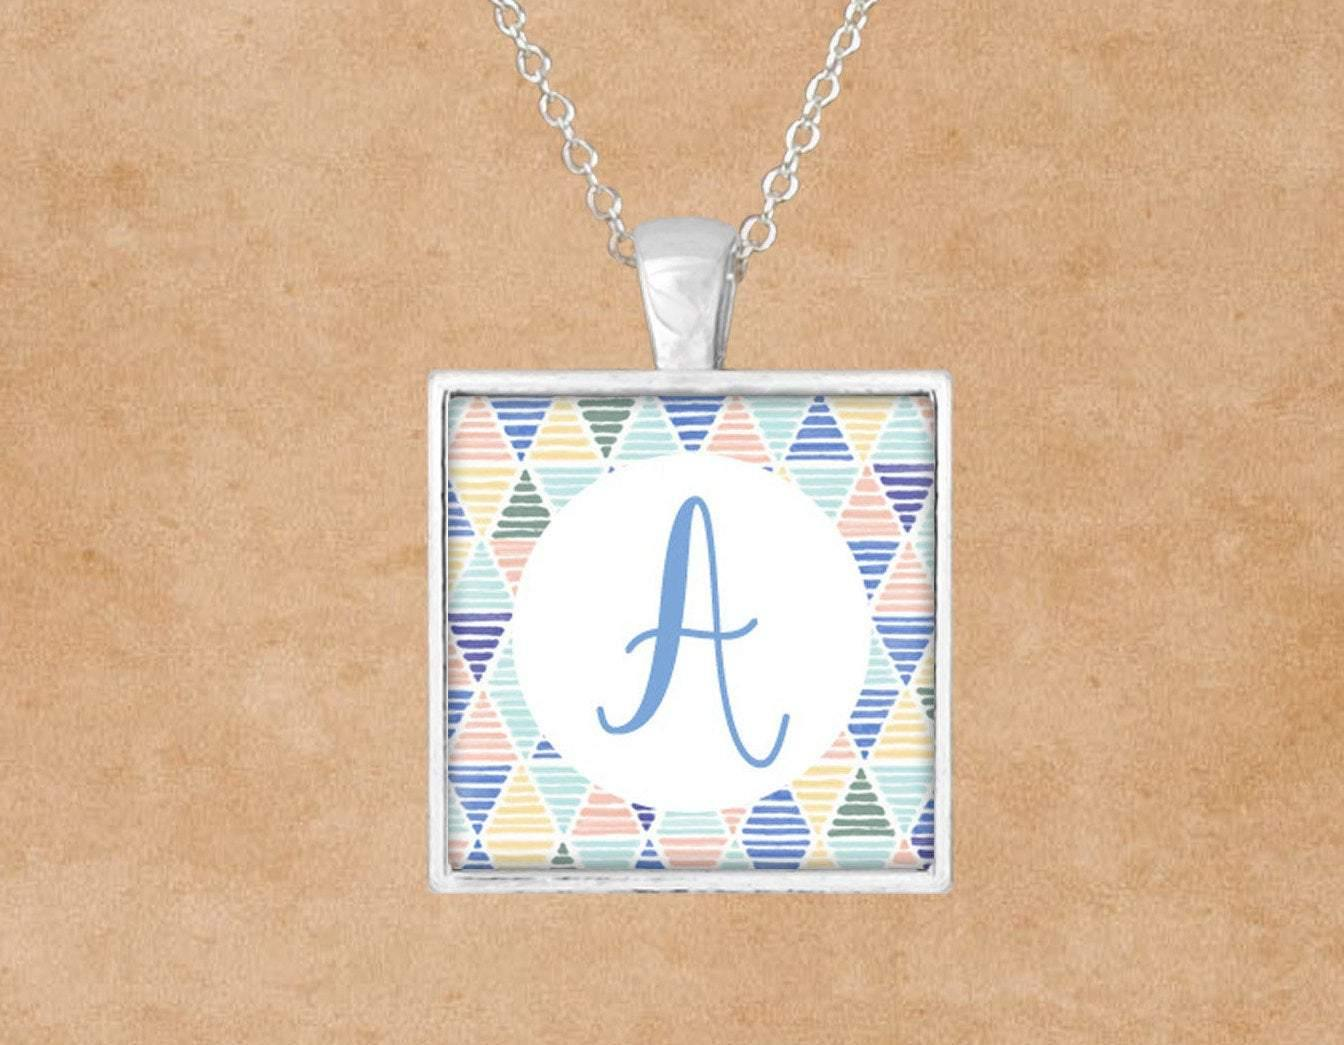 Pendants | Custom Jewelry | Personalized Jewelry | Pendant Necklace | Summer Monogram | This and That Solutions | Personalized Gifts | Custom Home Décor